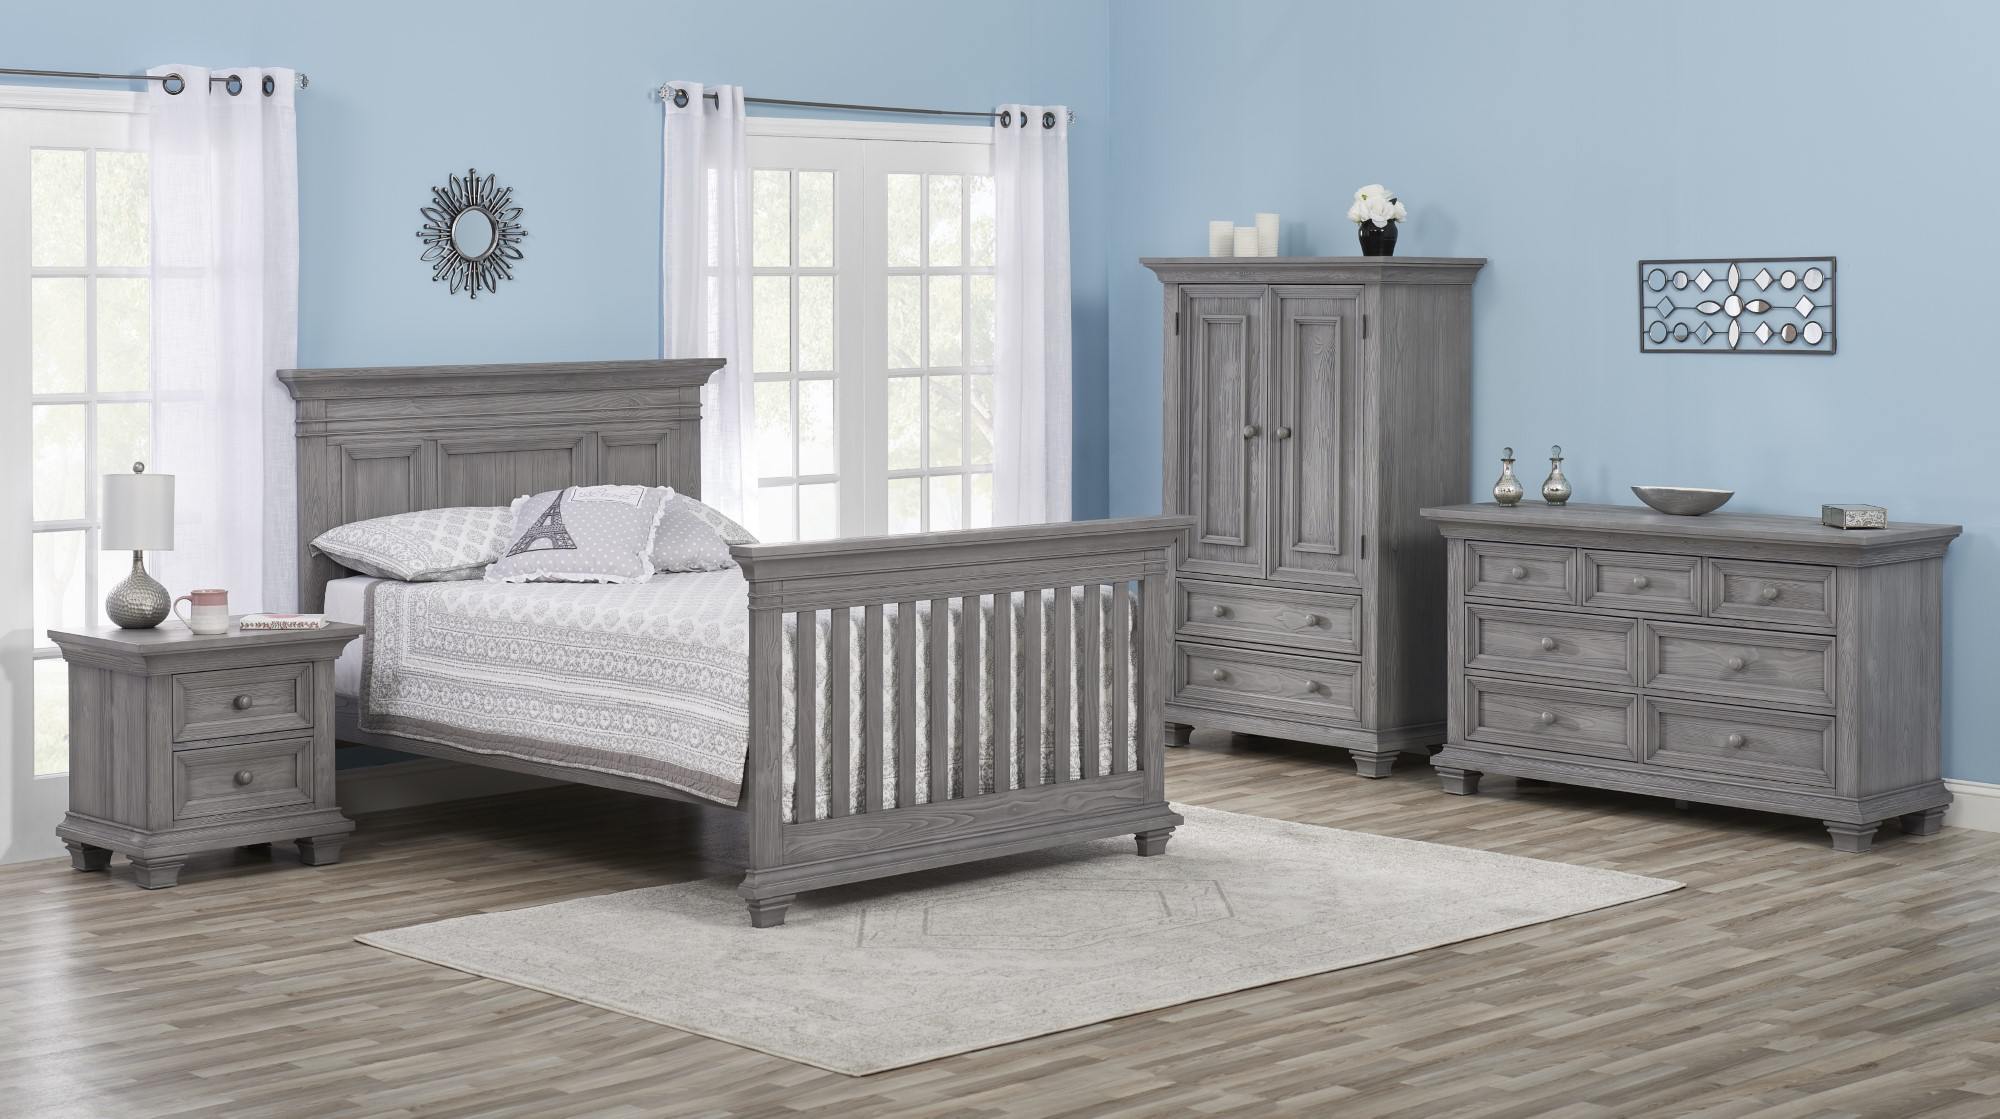 Full Bed Conversion Kit Westport Dusk Gray Oxford Baby